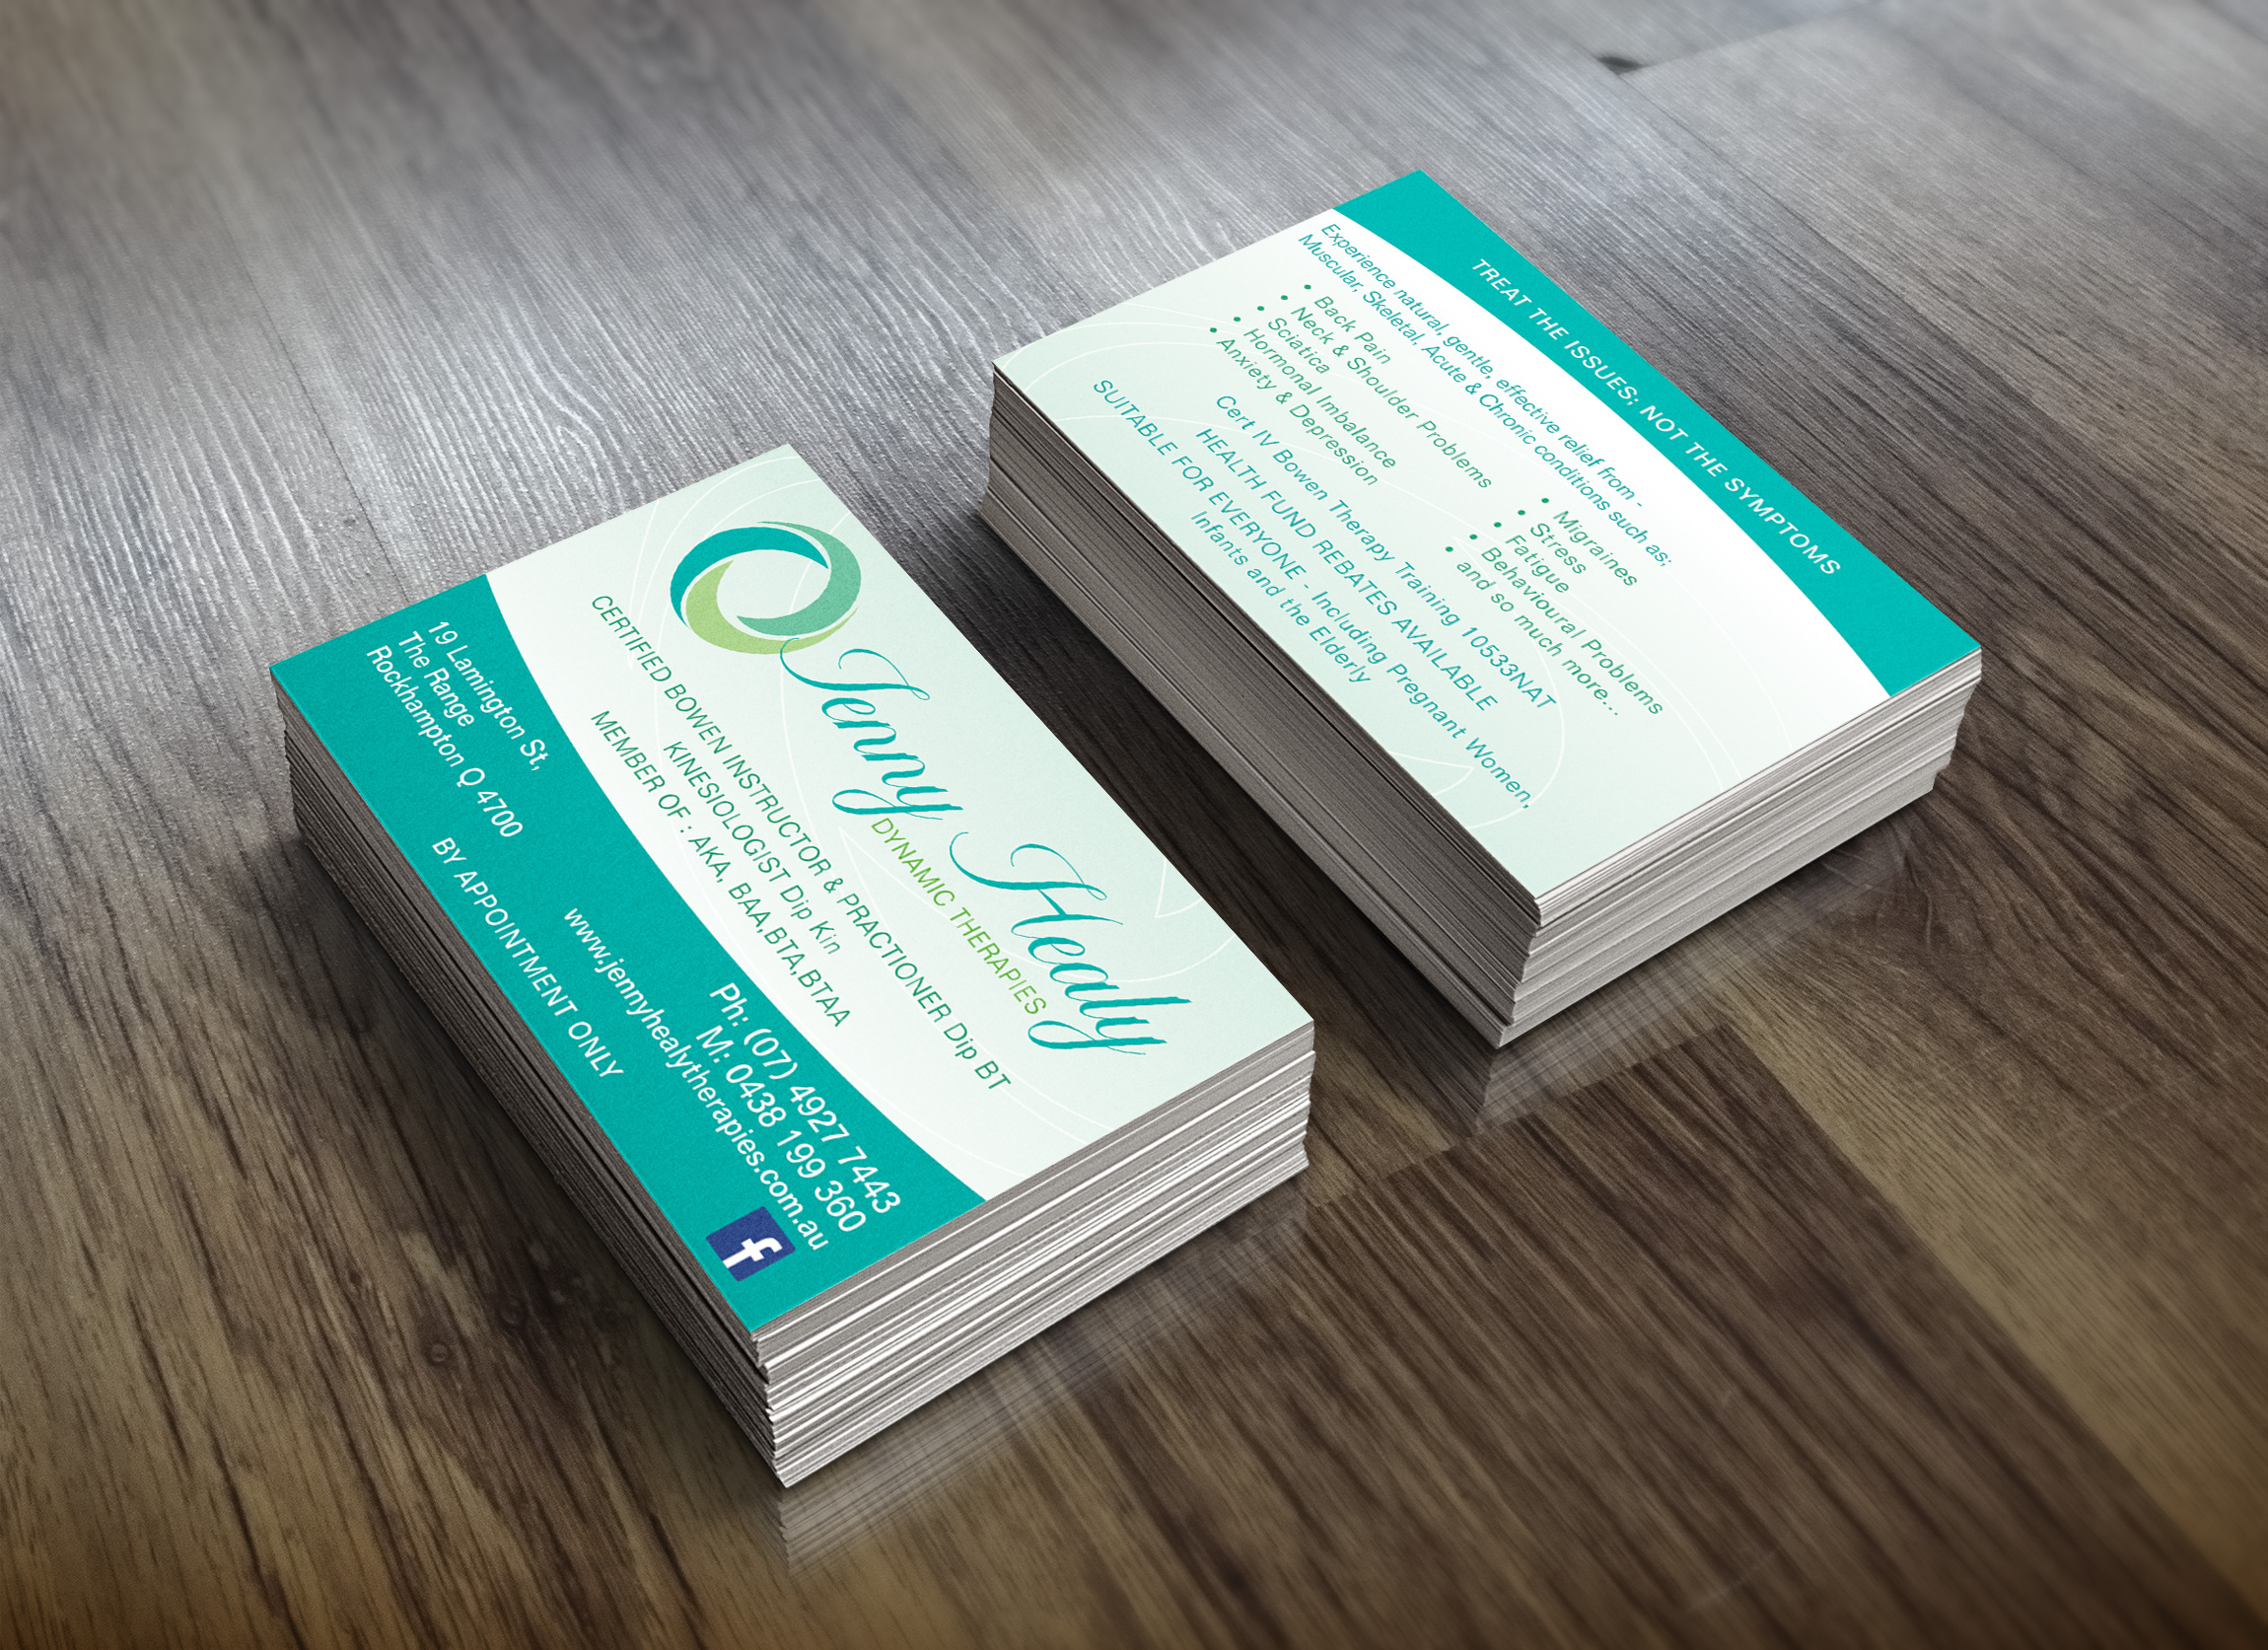 APAP Events Event Management and Graphic Design Rockhampton Jenny Healy Therapies Business Cards